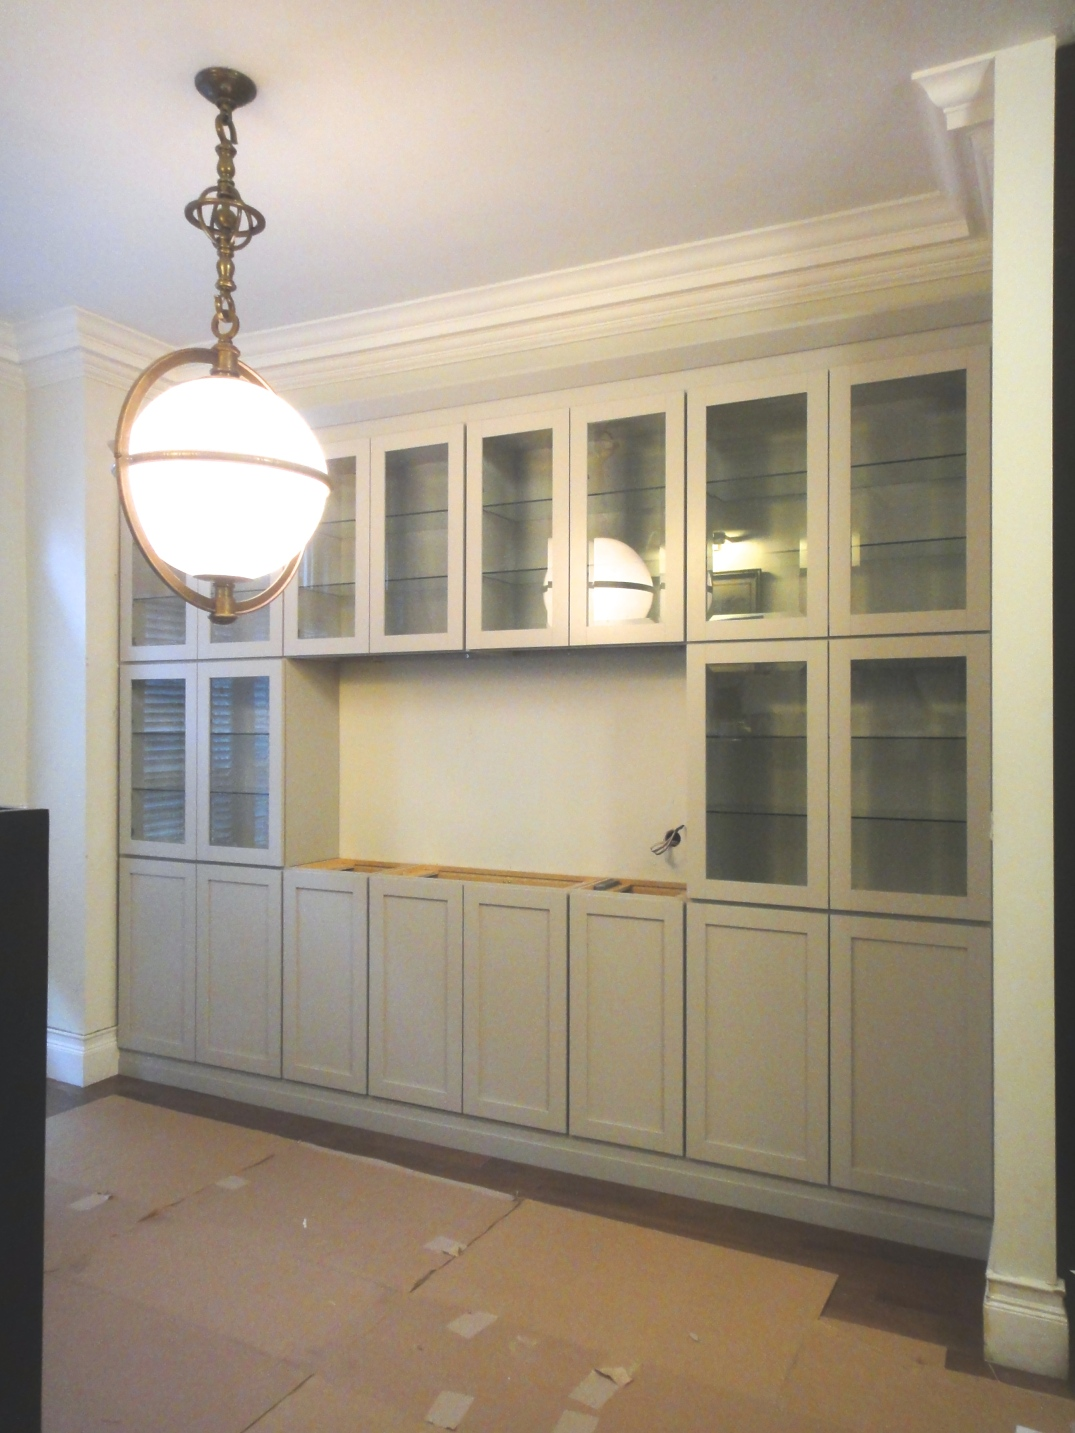 Dining cabinets install